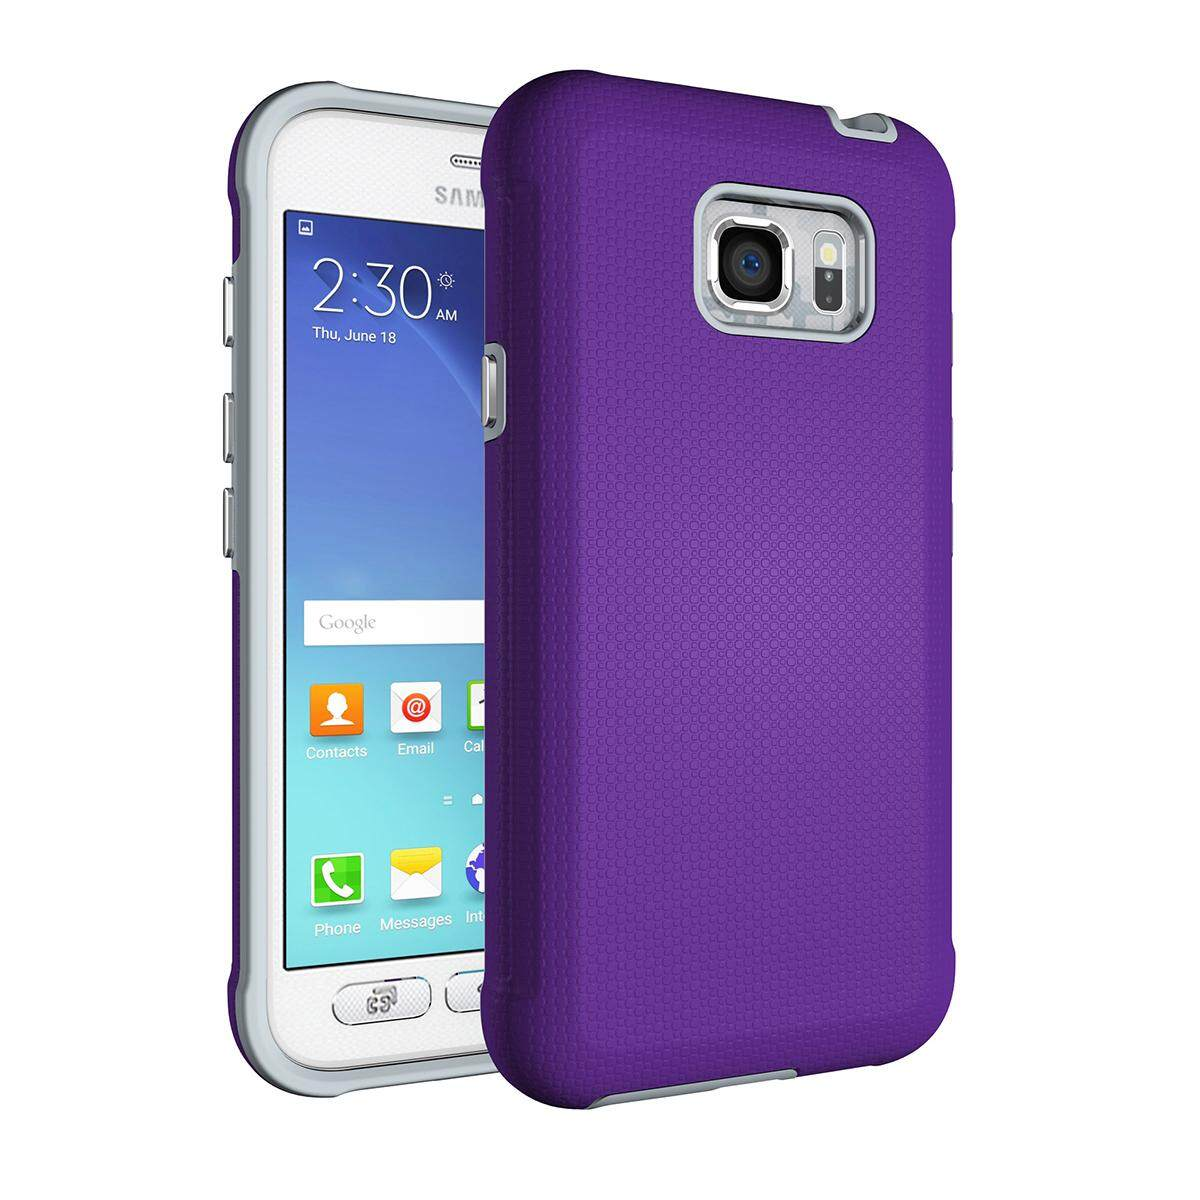 Meishengkai Case For Samsung Galaxy S7 Active Anti Slip And Shatter Proof Hard PC + TPU 2 in 1 Protective Case Cover Purple